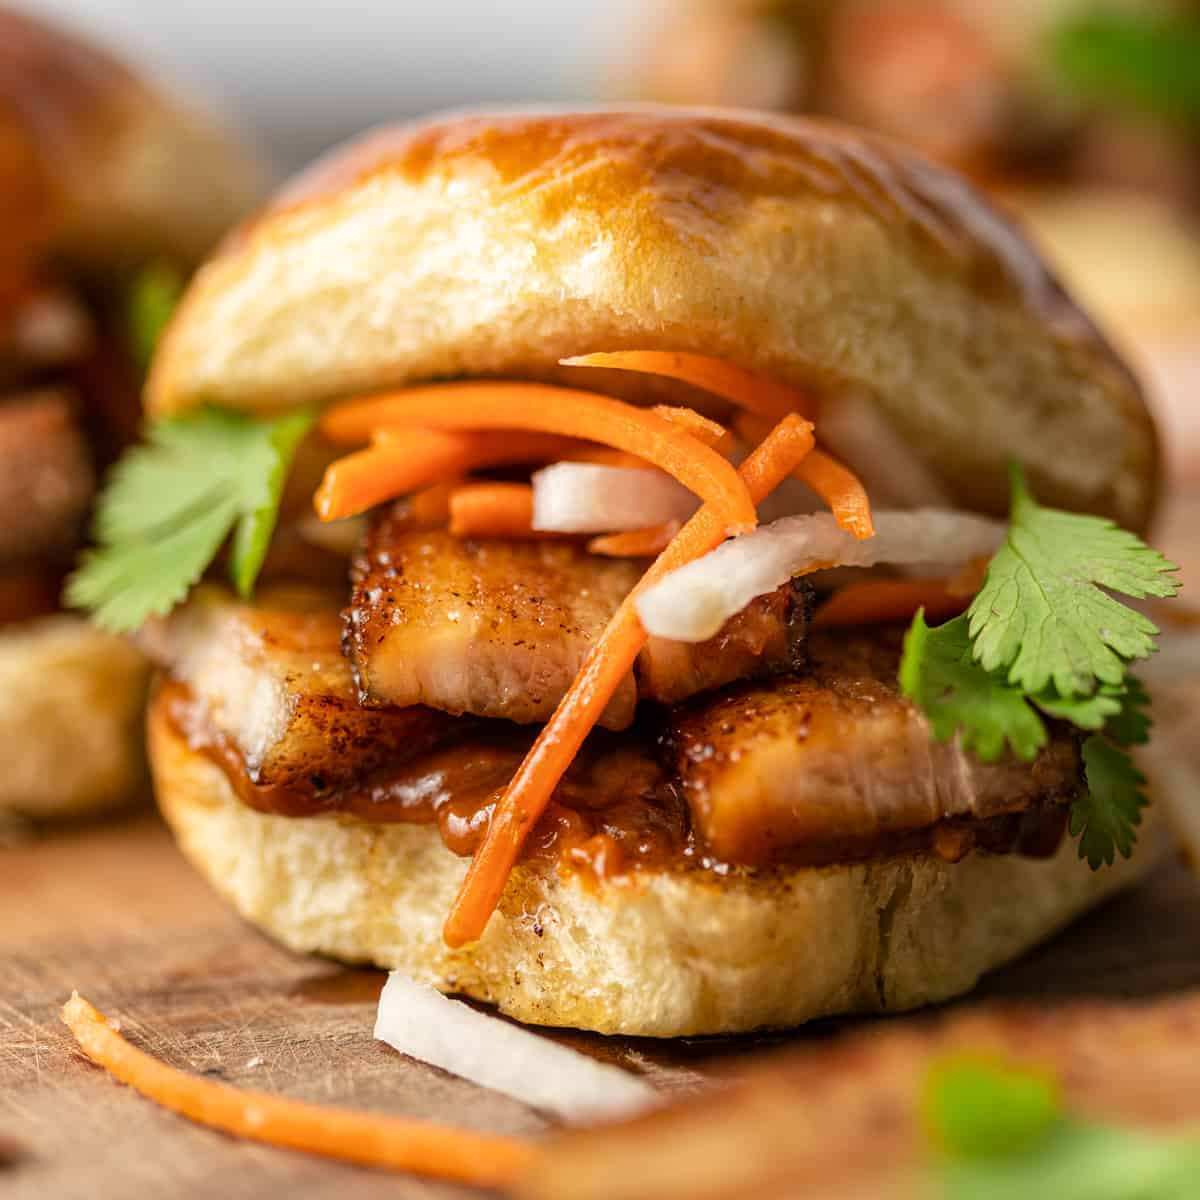 close up: fried pork belly on a soft bun with thin slices of carrots and onions